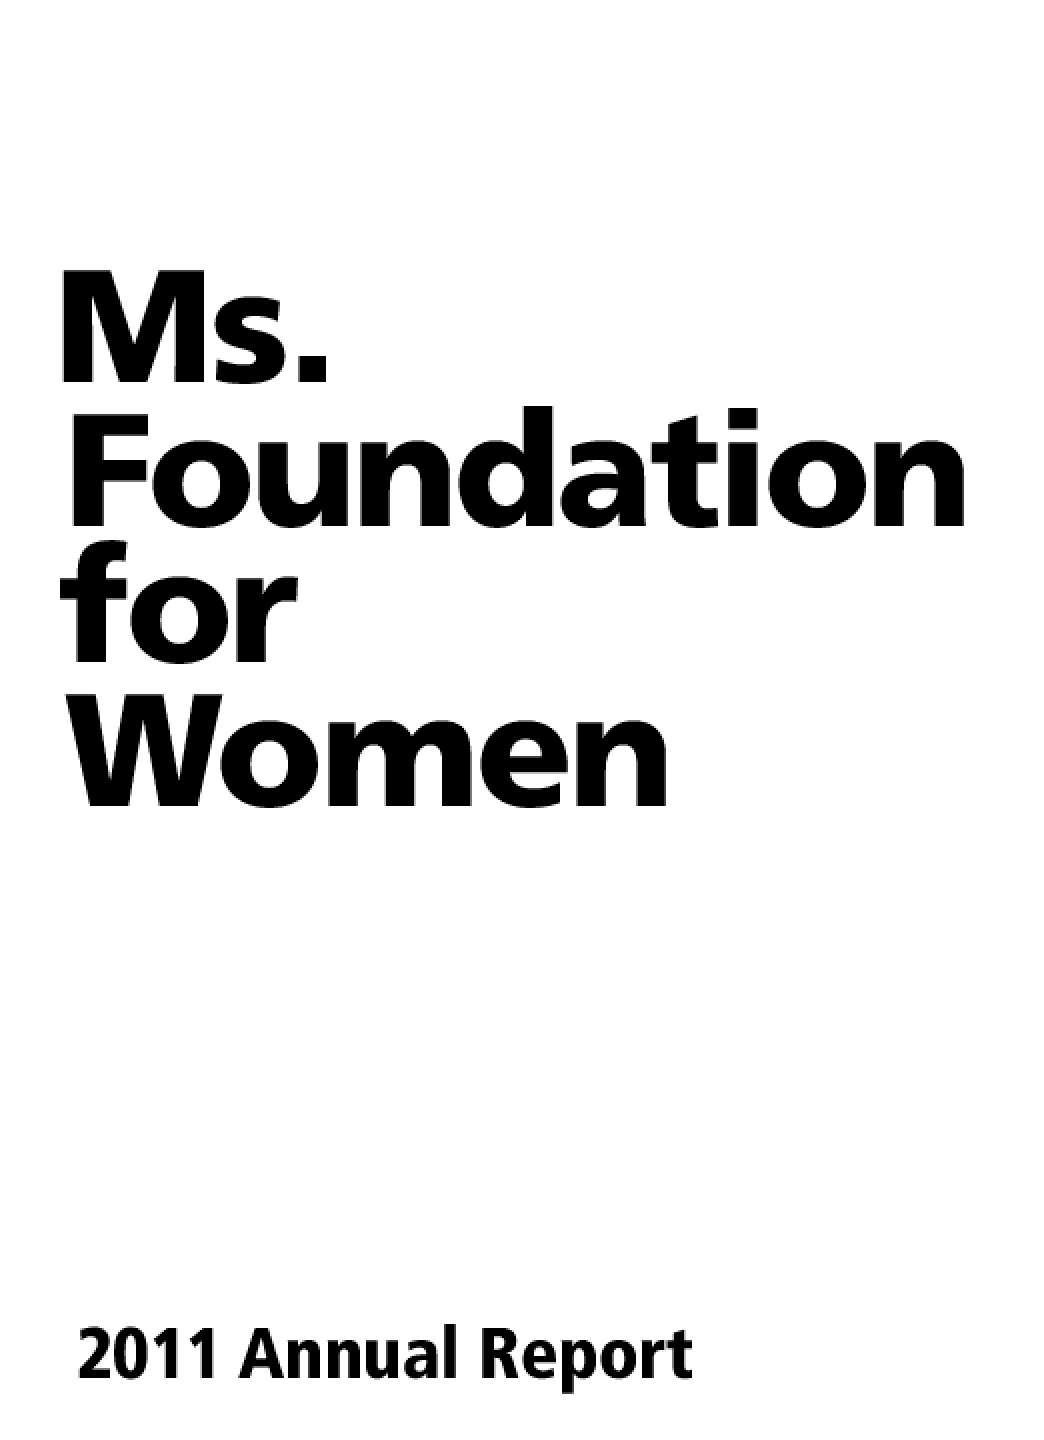 Ms. Foundation for Women, 2011 Annual Report